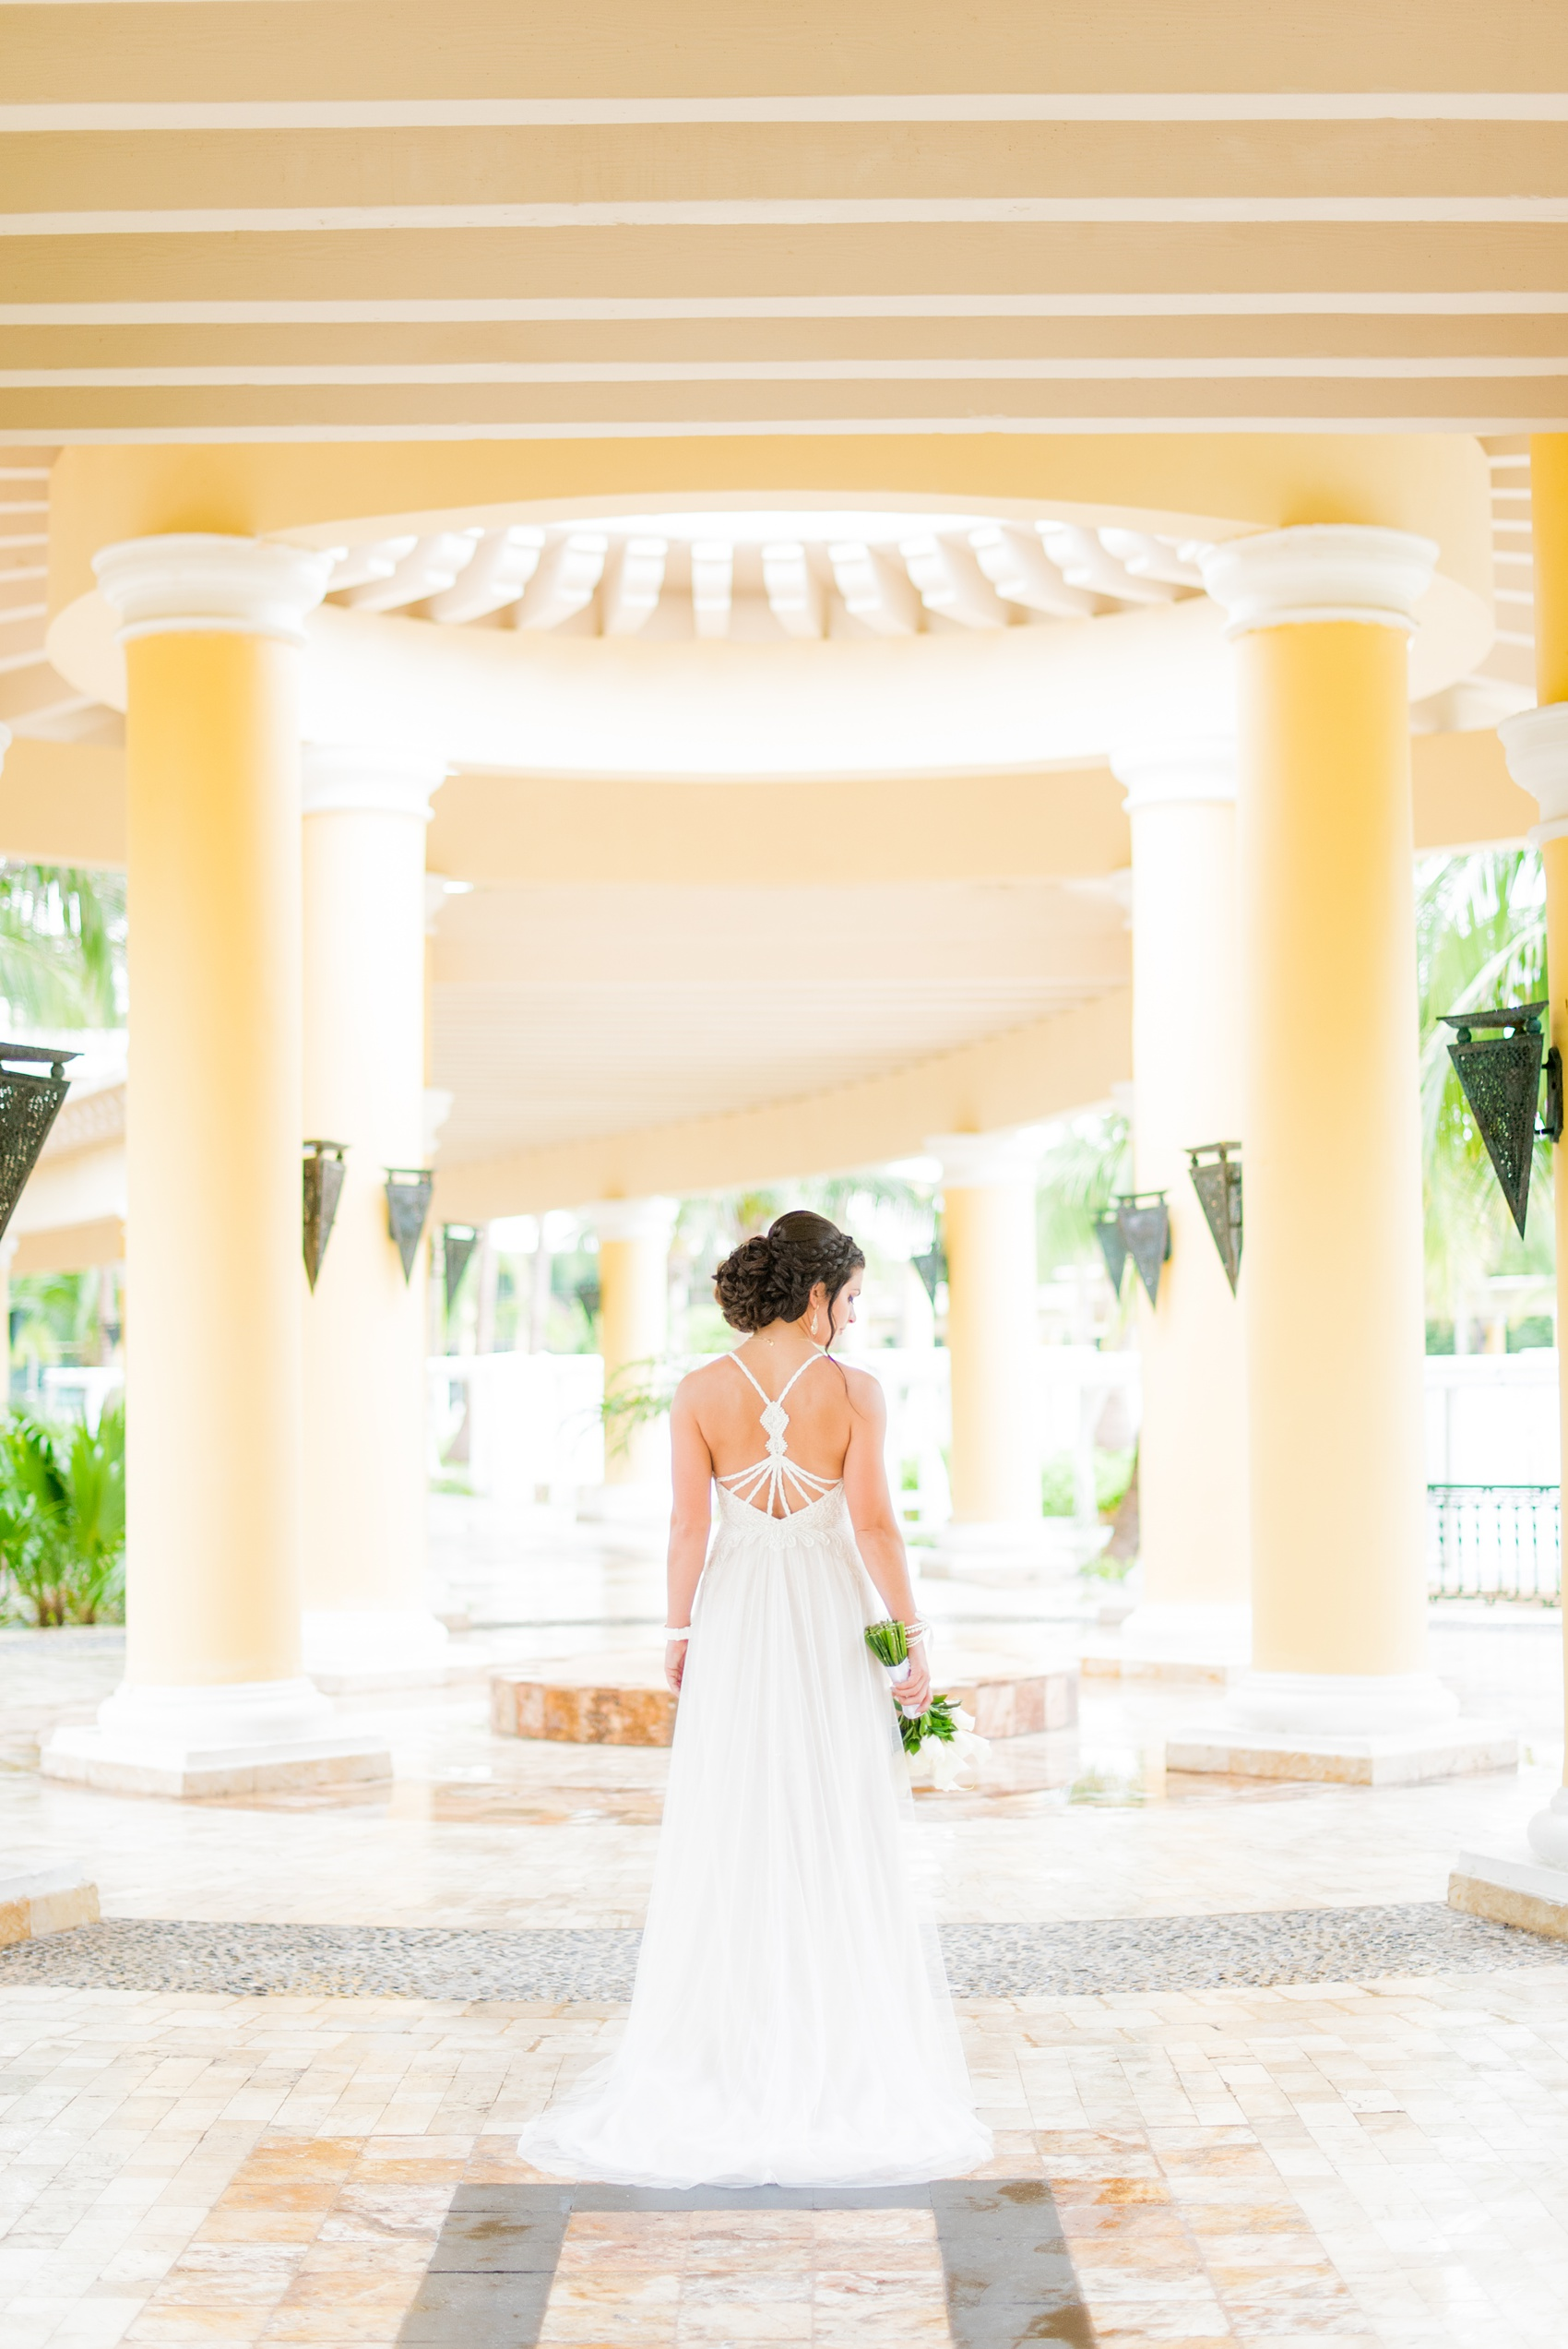 Mikkel Paige Photography photos from a wedding at Grand Paraiso, Mexico, Playa del Carmen Iberostar resort. Picture of the back of the bride's beach dress with string detail.